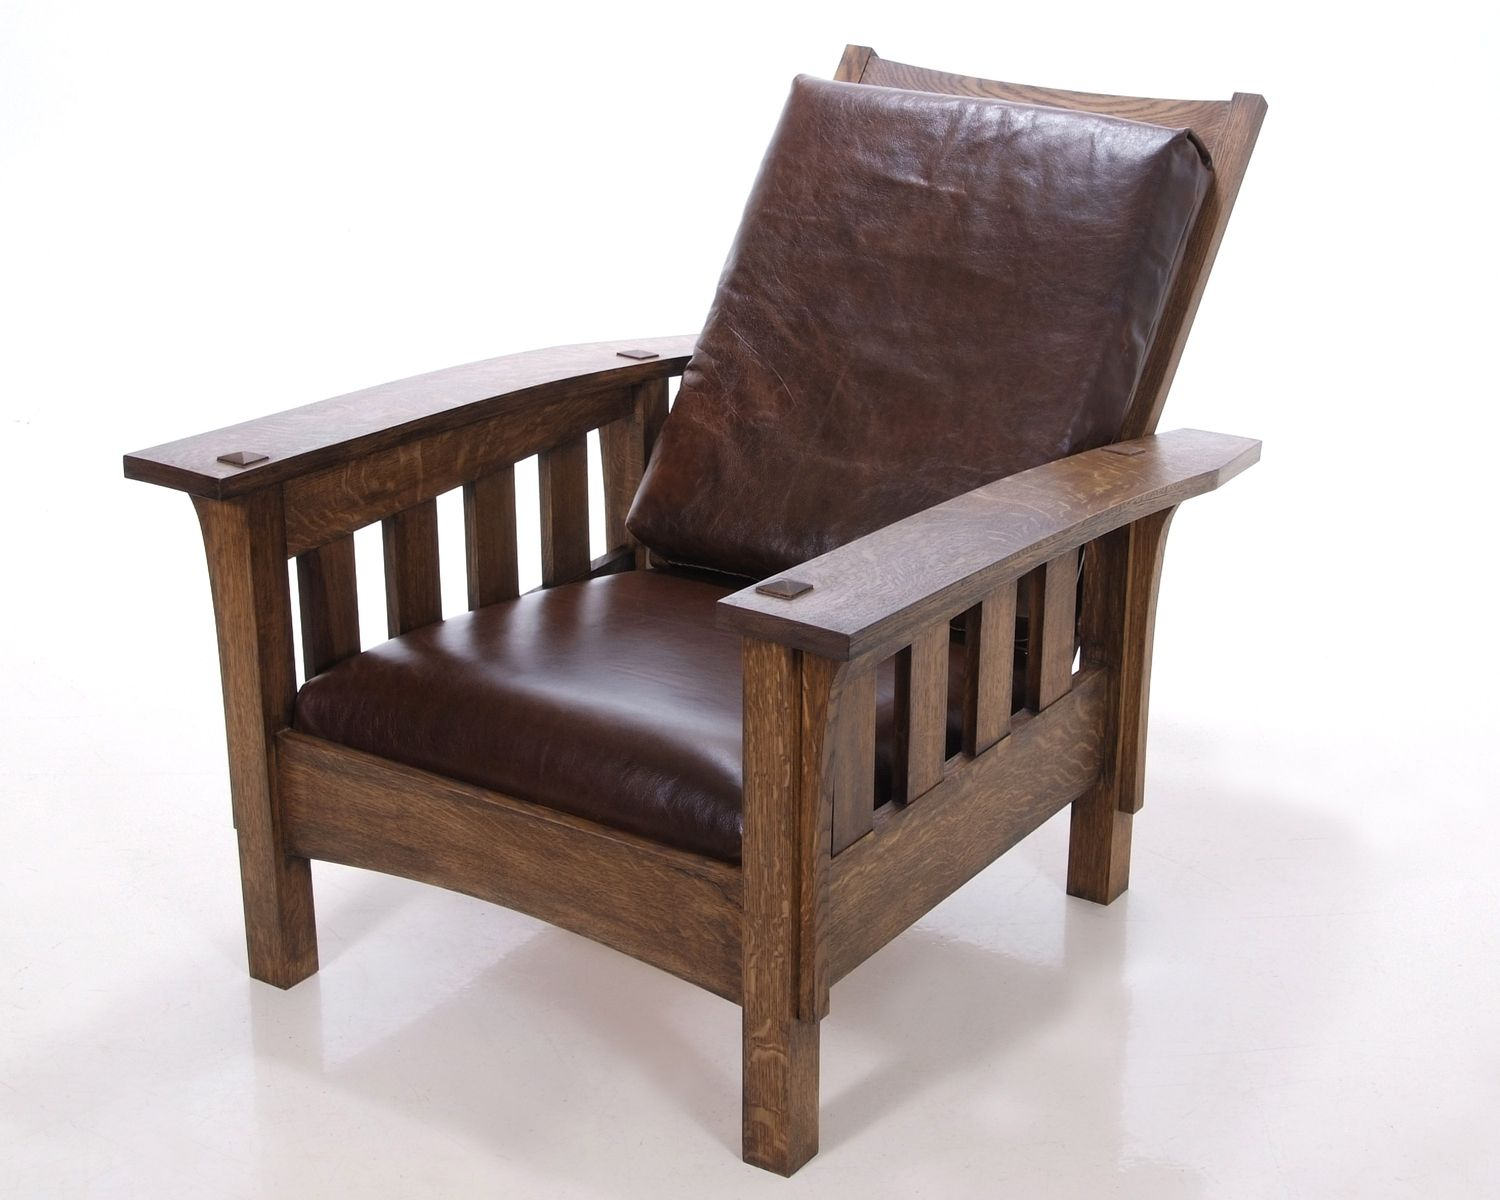 Hand Crafted Morris Chair by Kauffman Fine Furniture